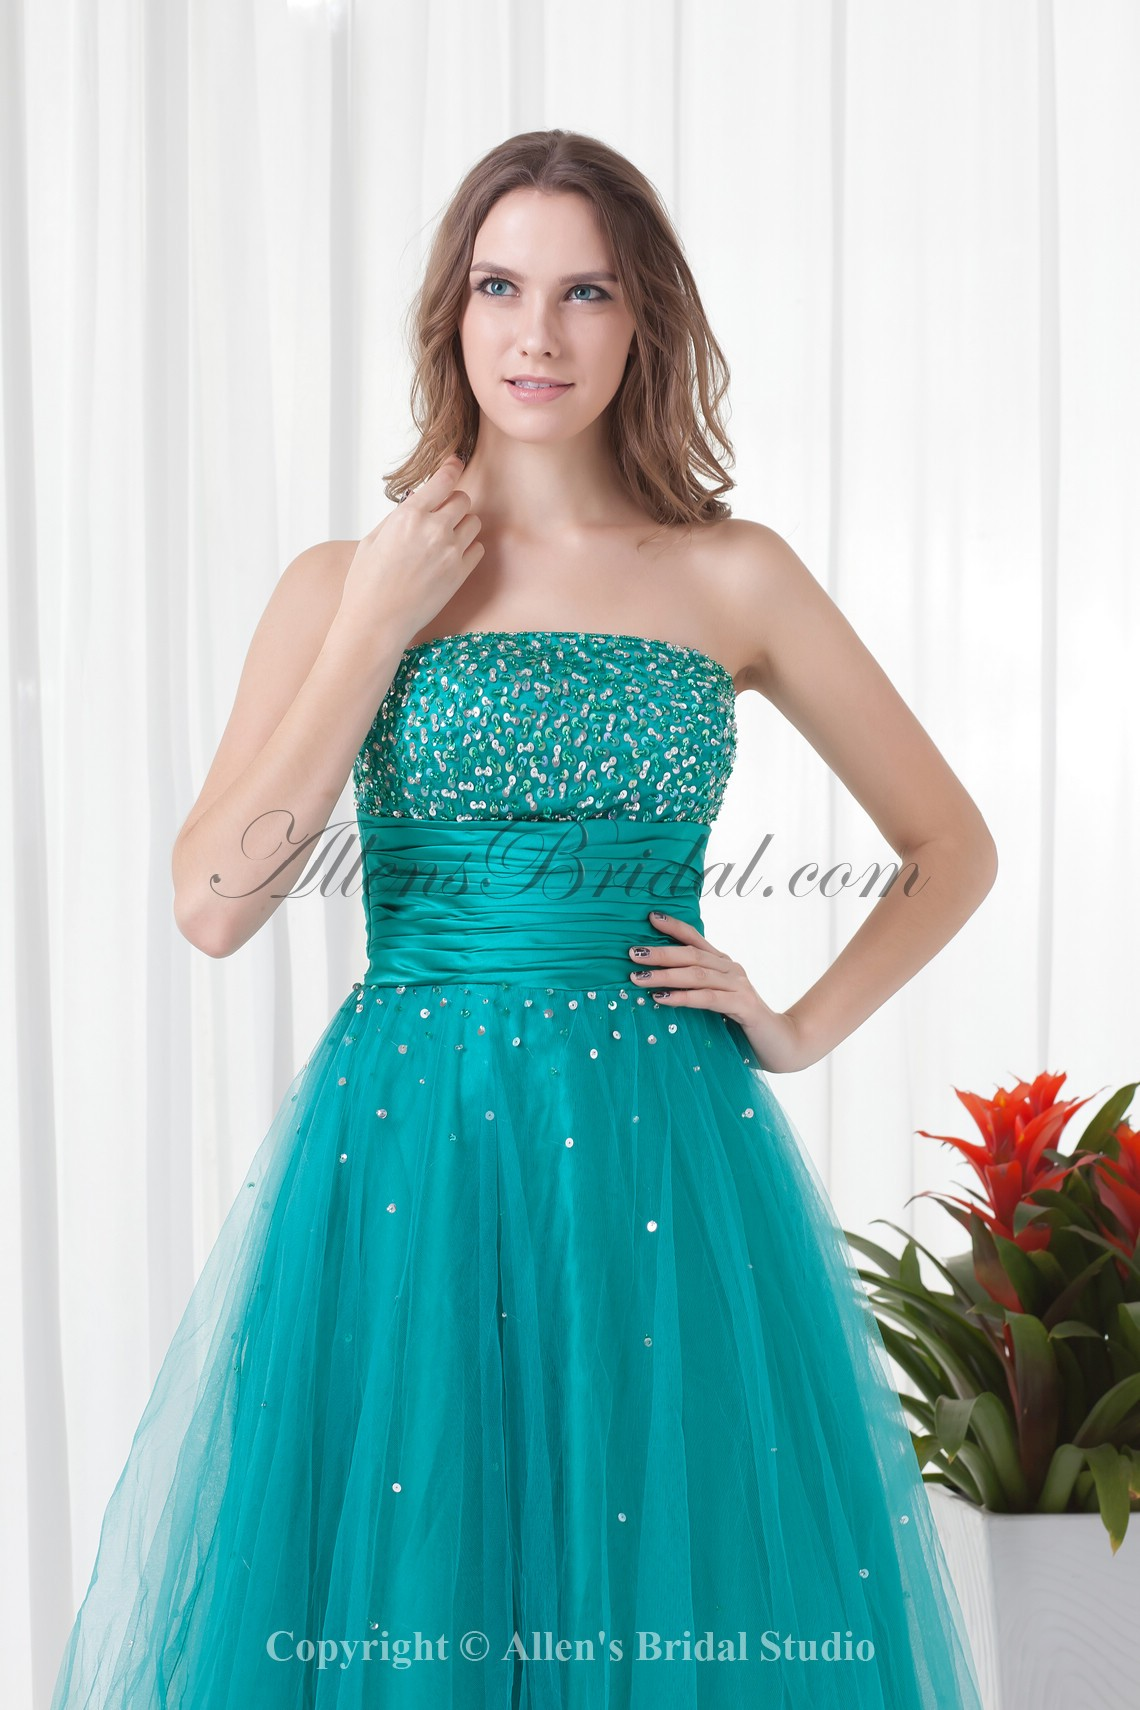 /323-2580/satin-and-net-strapless-a-line-floor-length-sequins-prom-dress.jpg